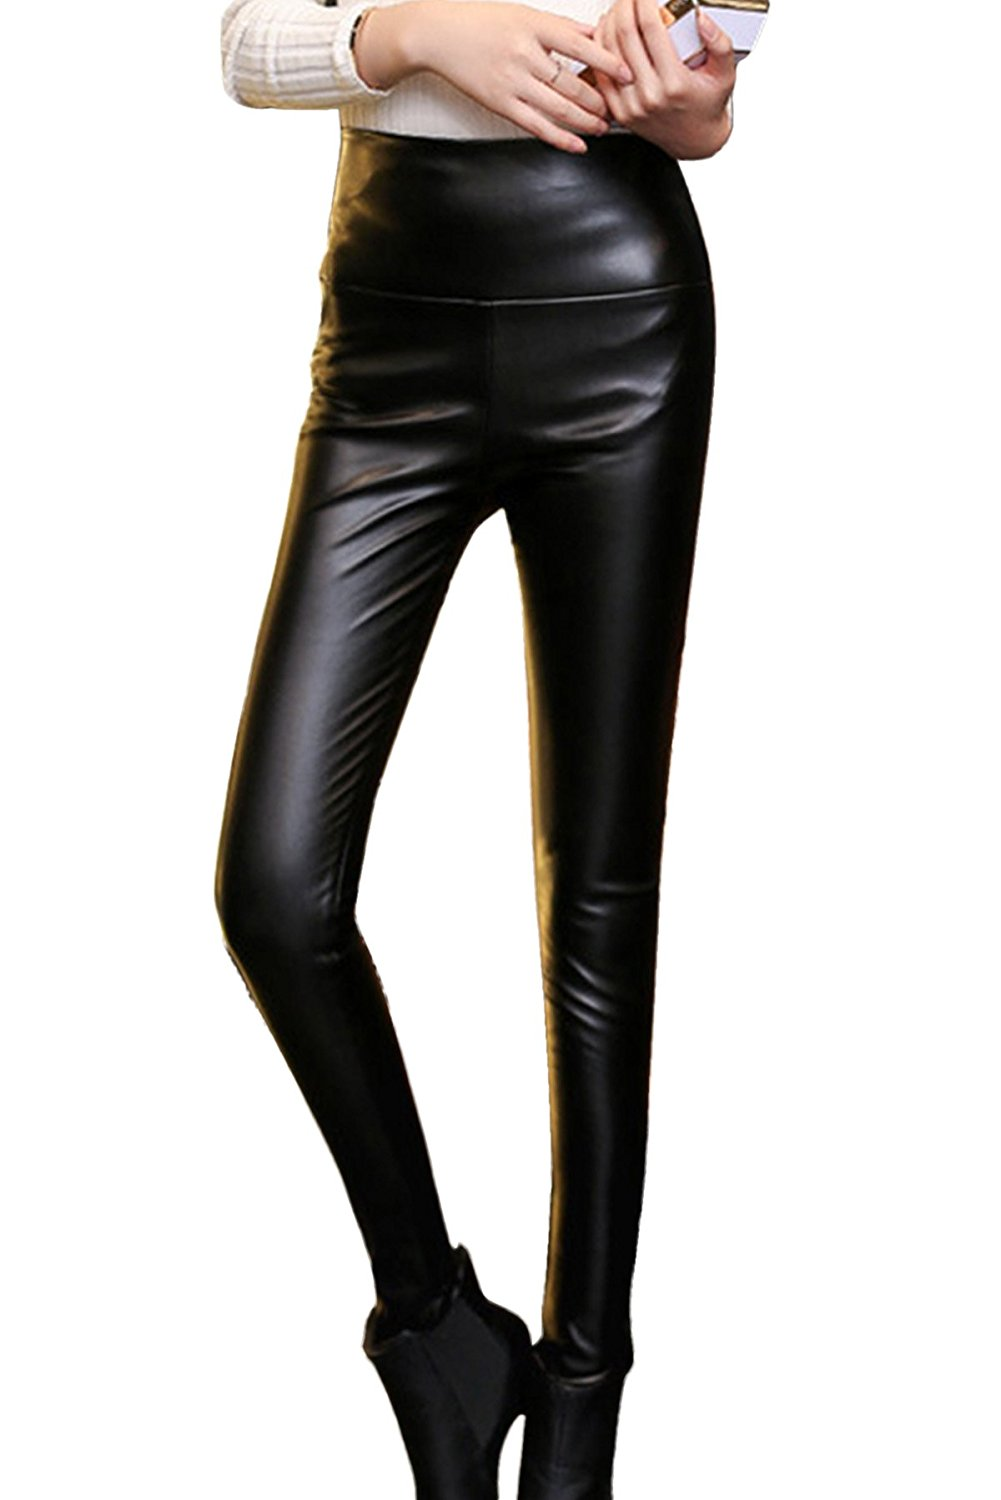 a0d7c17be5ed9d Get Quotations · Women's PU Leather Leggings Stretch High Waisted Pencil  Pants Skinny Legging Pants Black